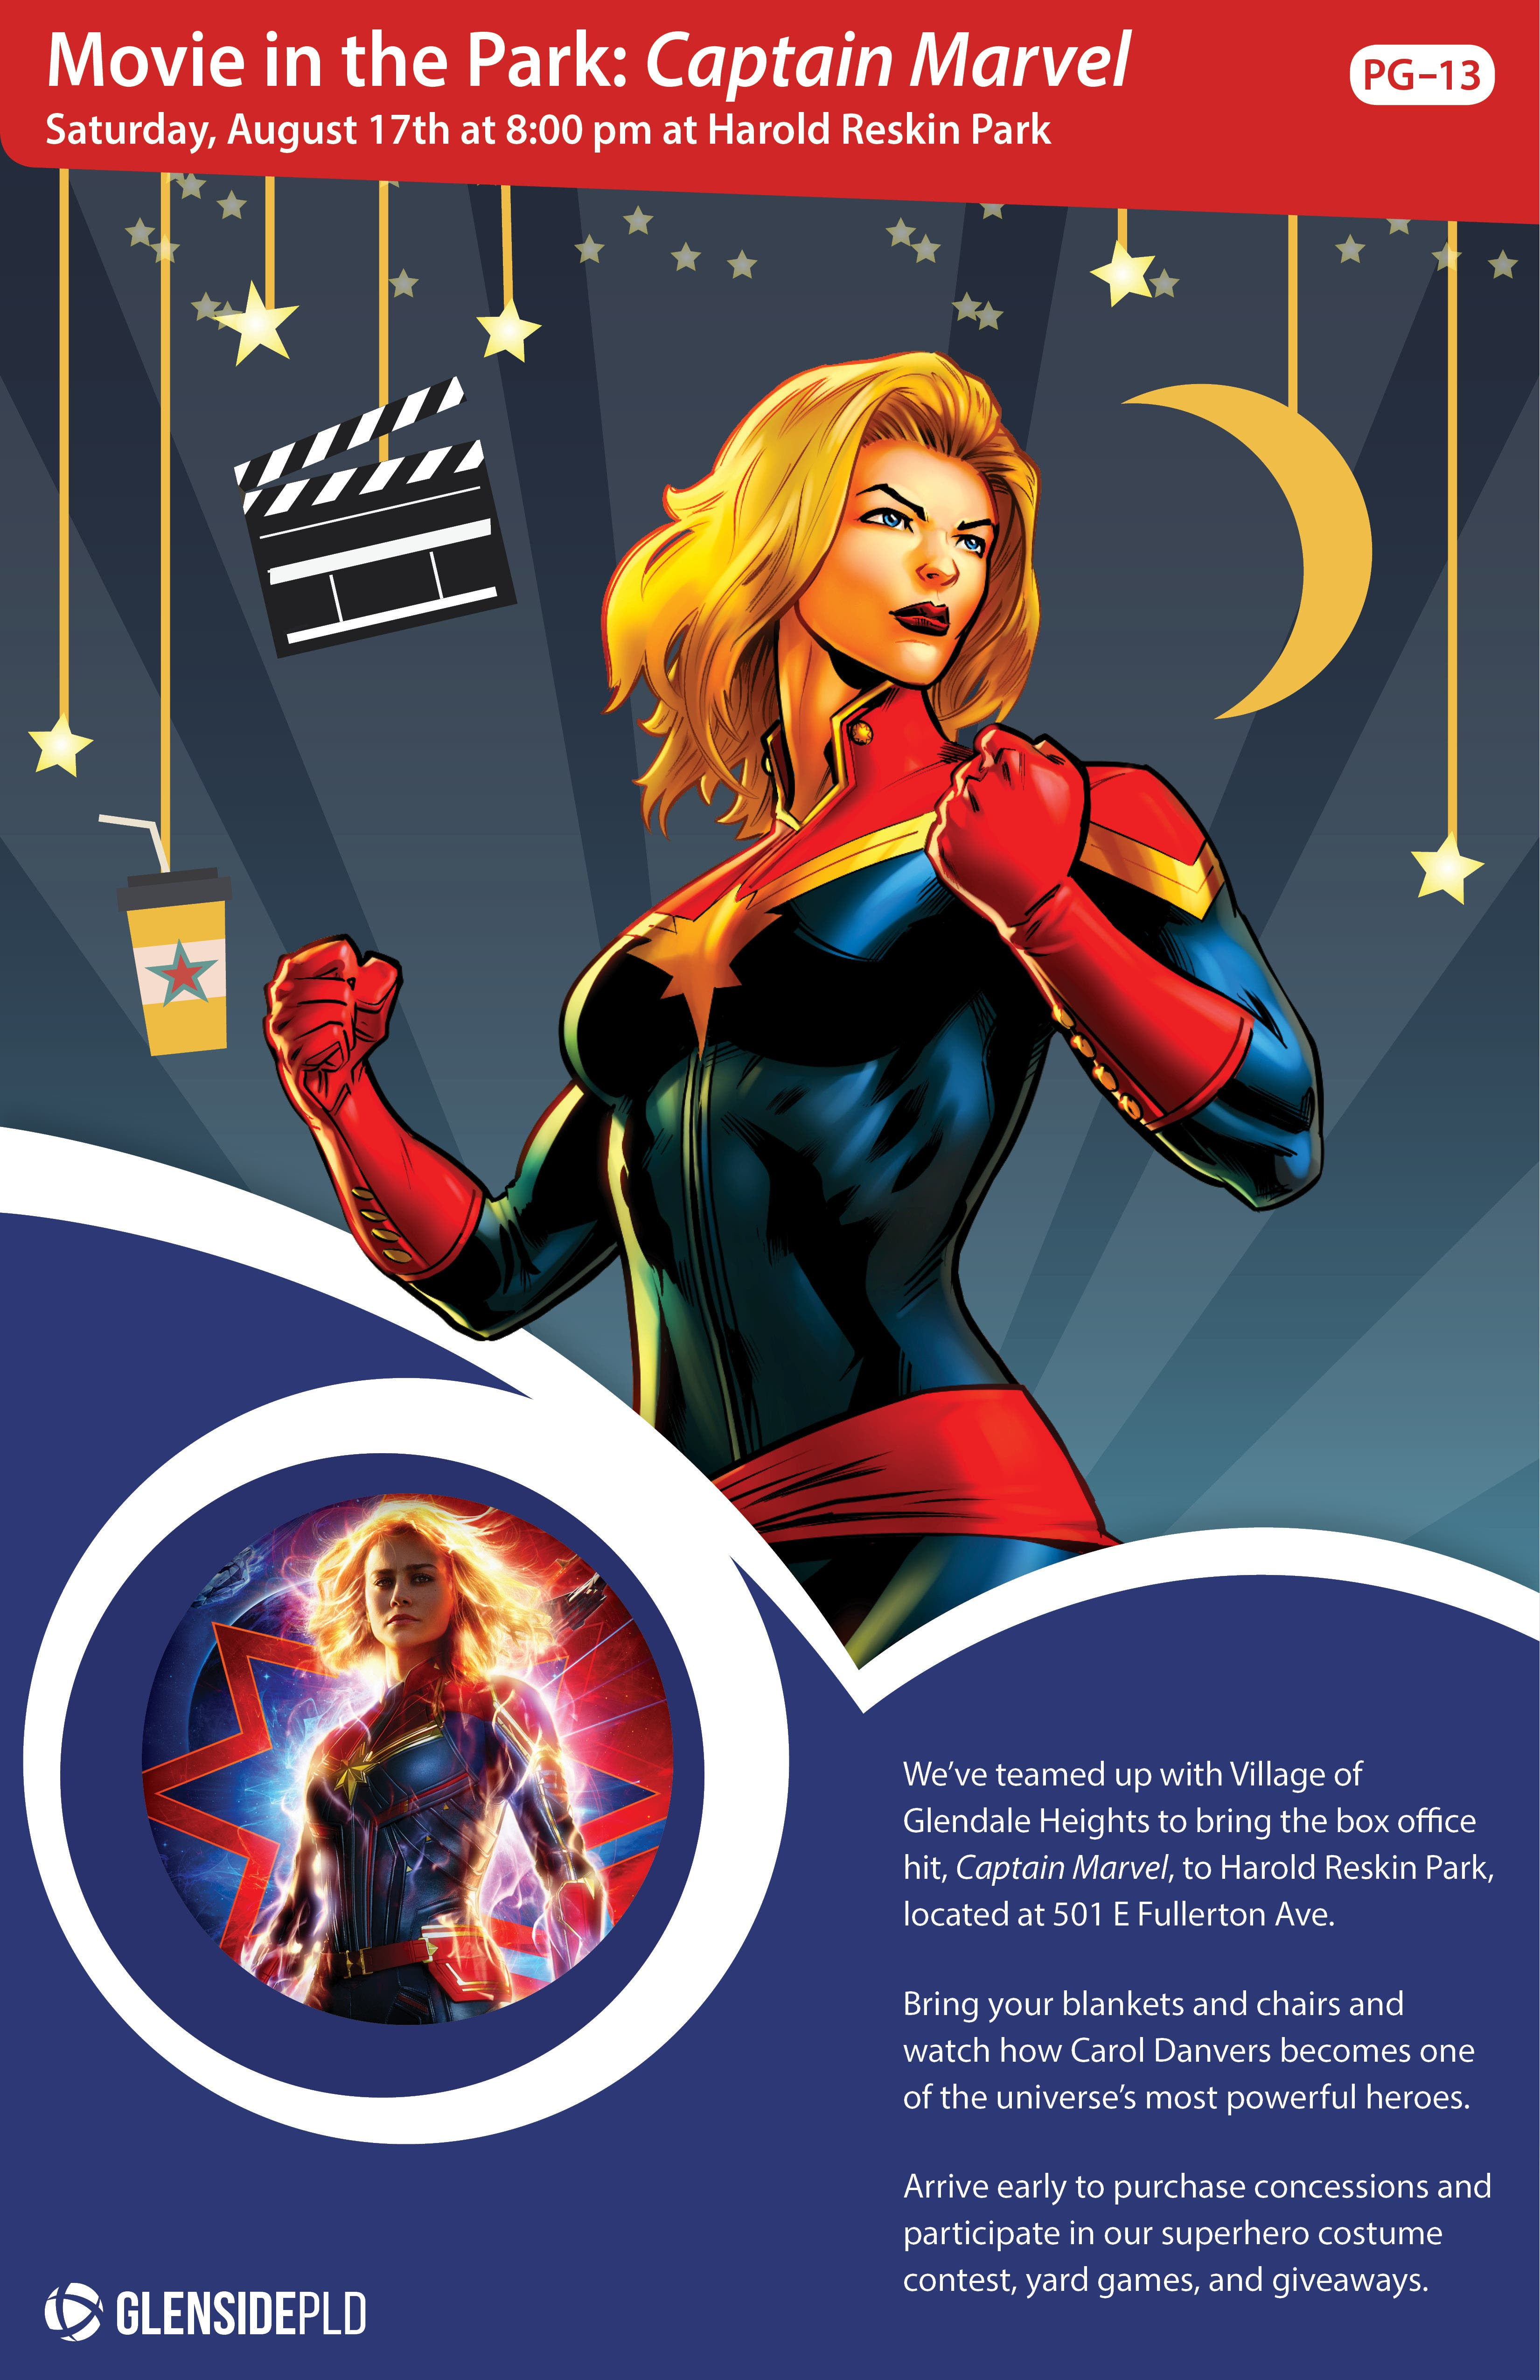 Aug 17 | Movie in the Park: Captain Marvel (PG-13) | Downers Grove